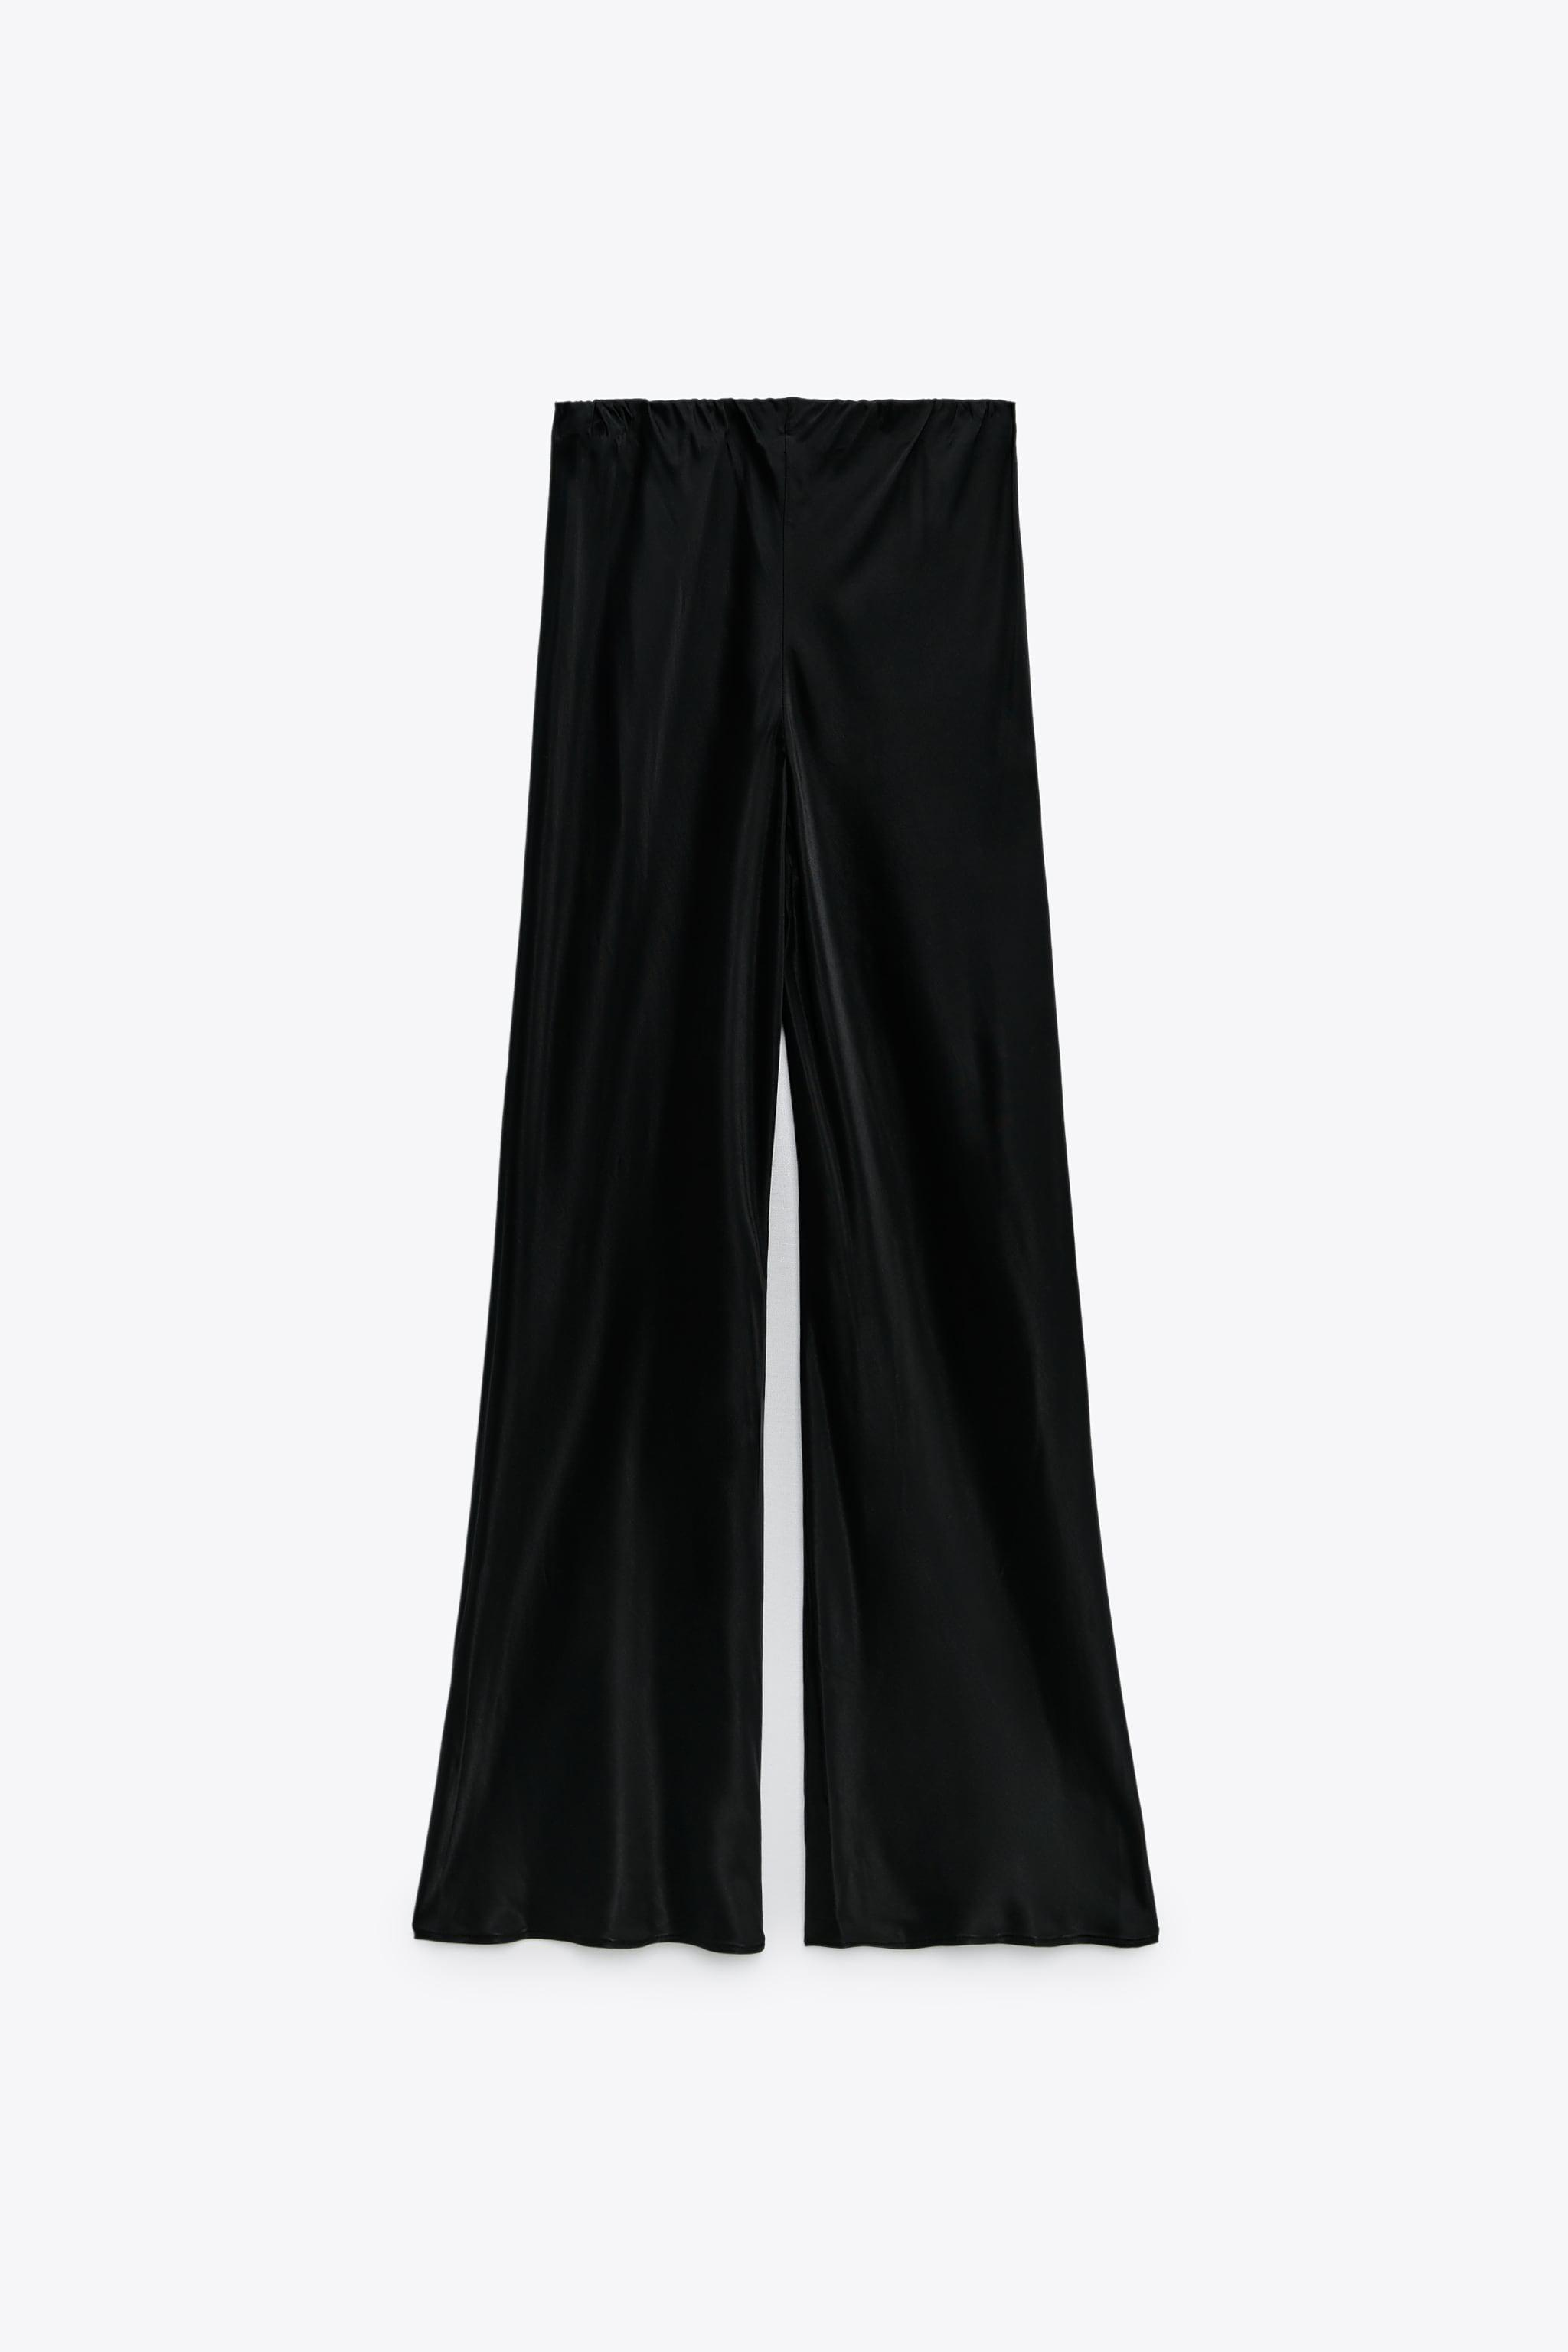 FLARED SATIN EFFECT PANTS 6